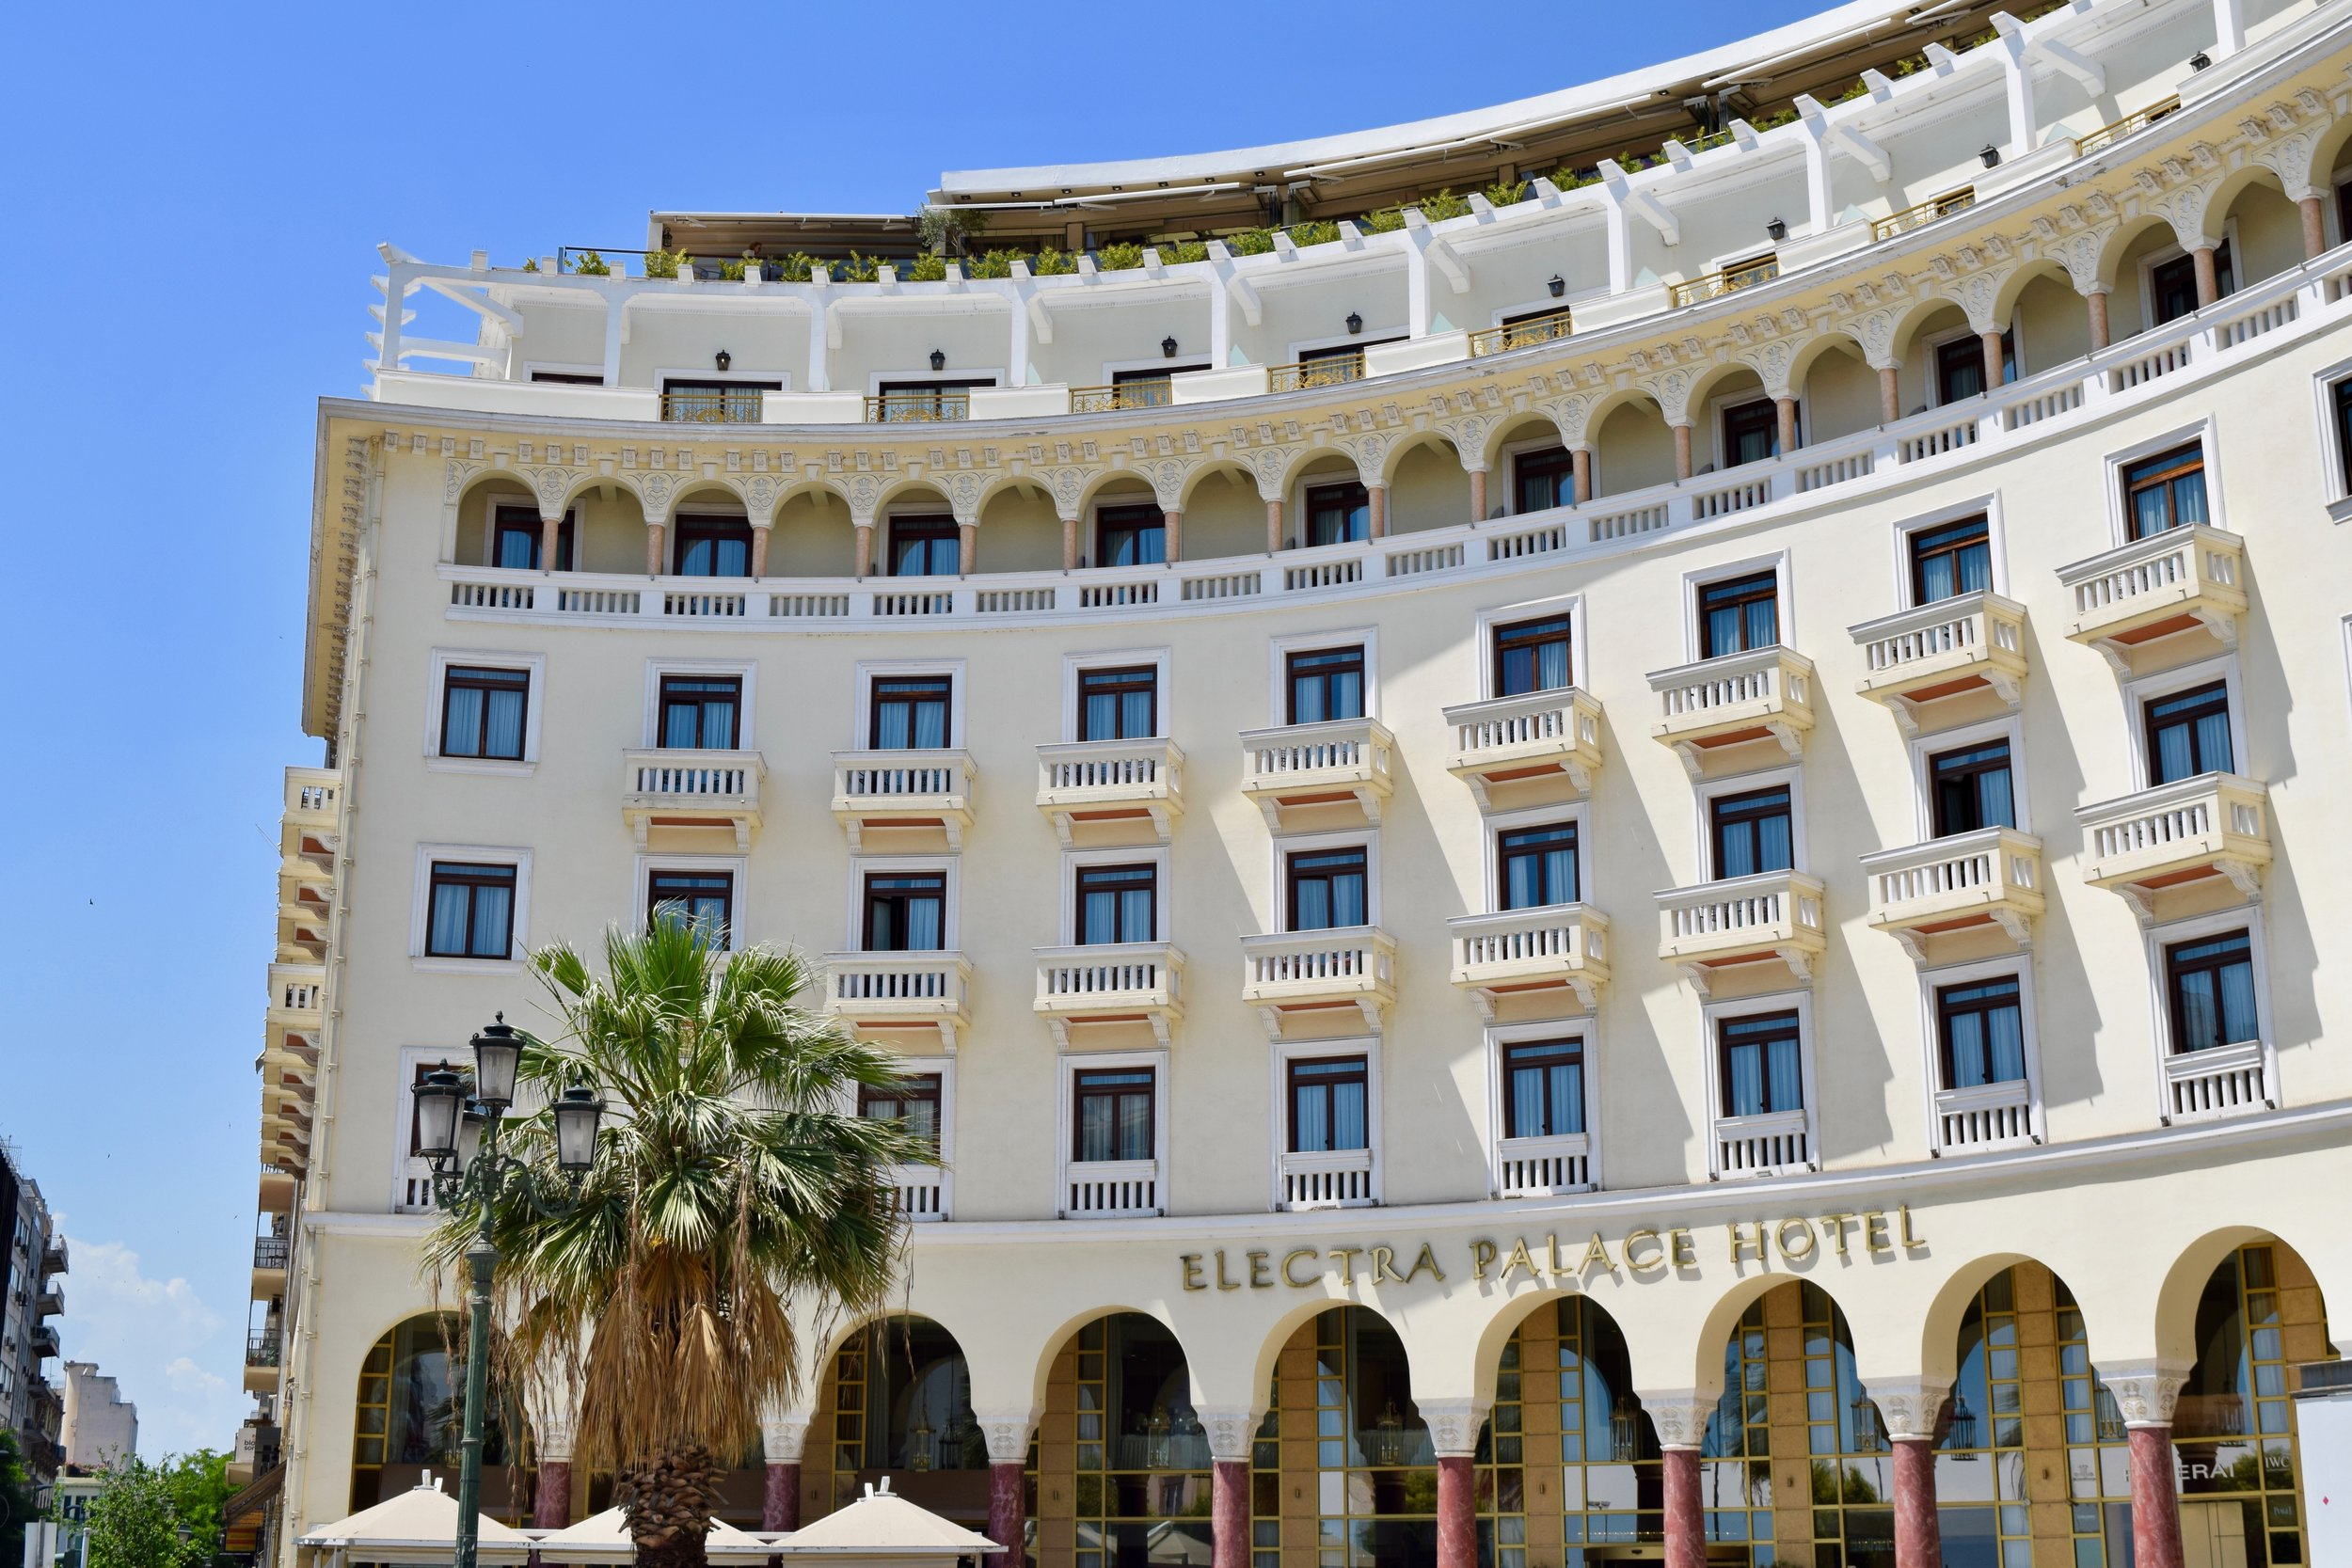 Building of the Electra Palace Hotel